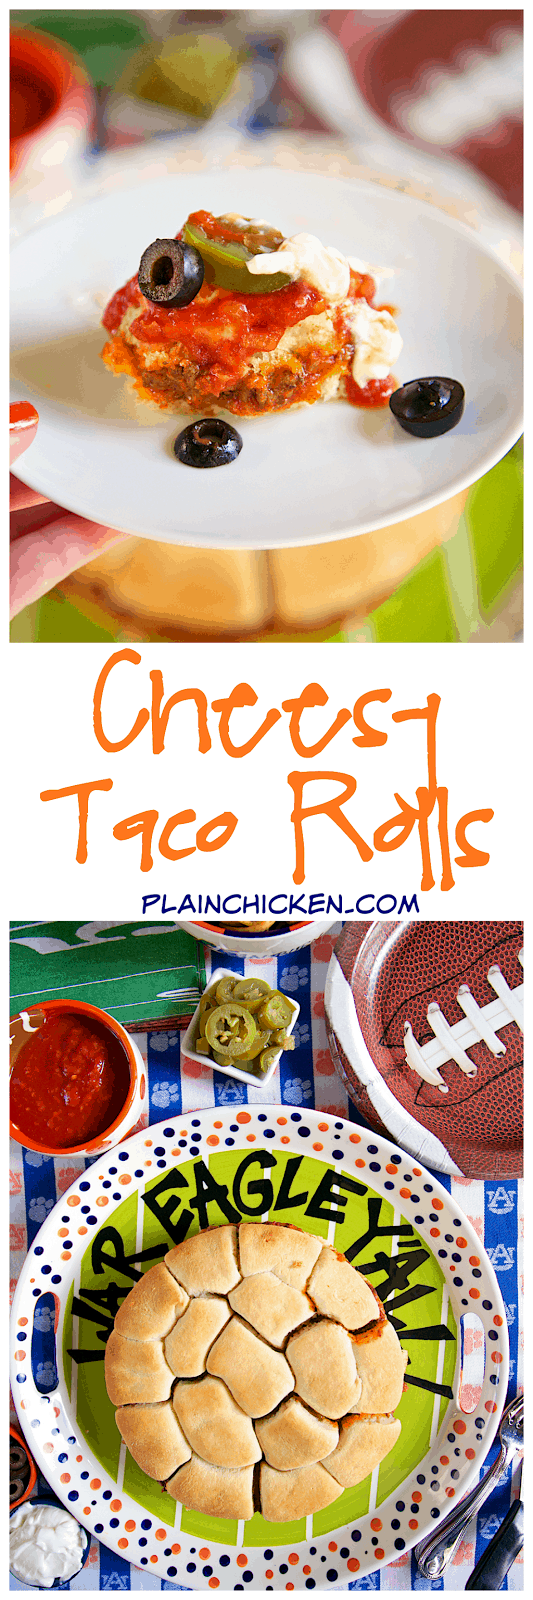 Cheesy Taco Rolls - Sister Schubert rolls stuffed with cheese and spicy taco meat! SO easy and SO good! Top with your favorite taco toppings. Can make ahead and freeze for later. Great for parties or a fun twist to taco night.